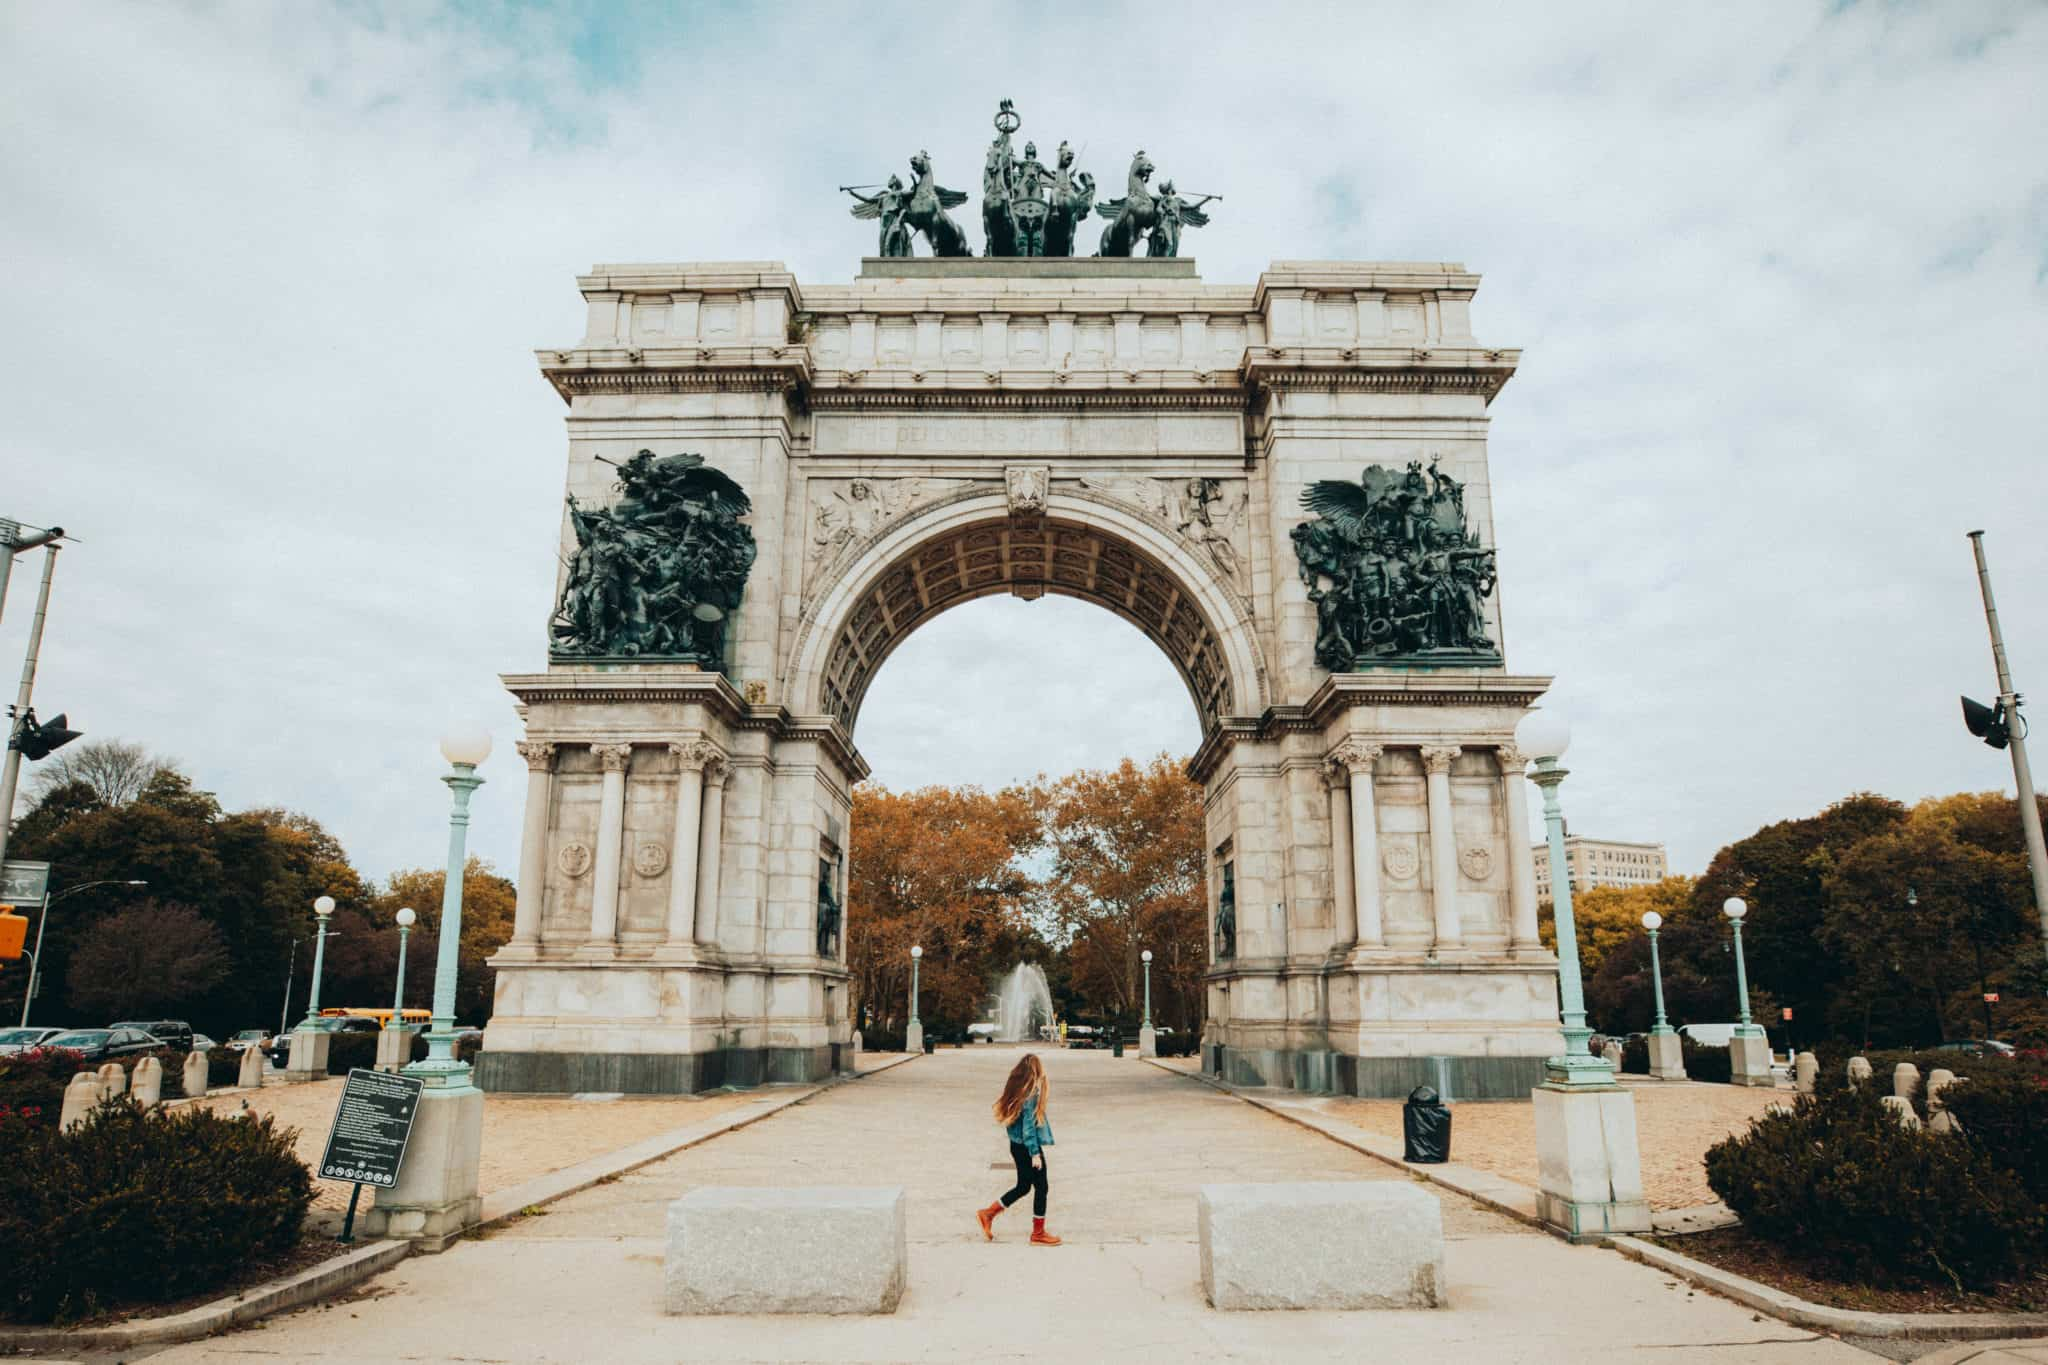 Grand Army Plaza in Prospect Park, Brooklyn